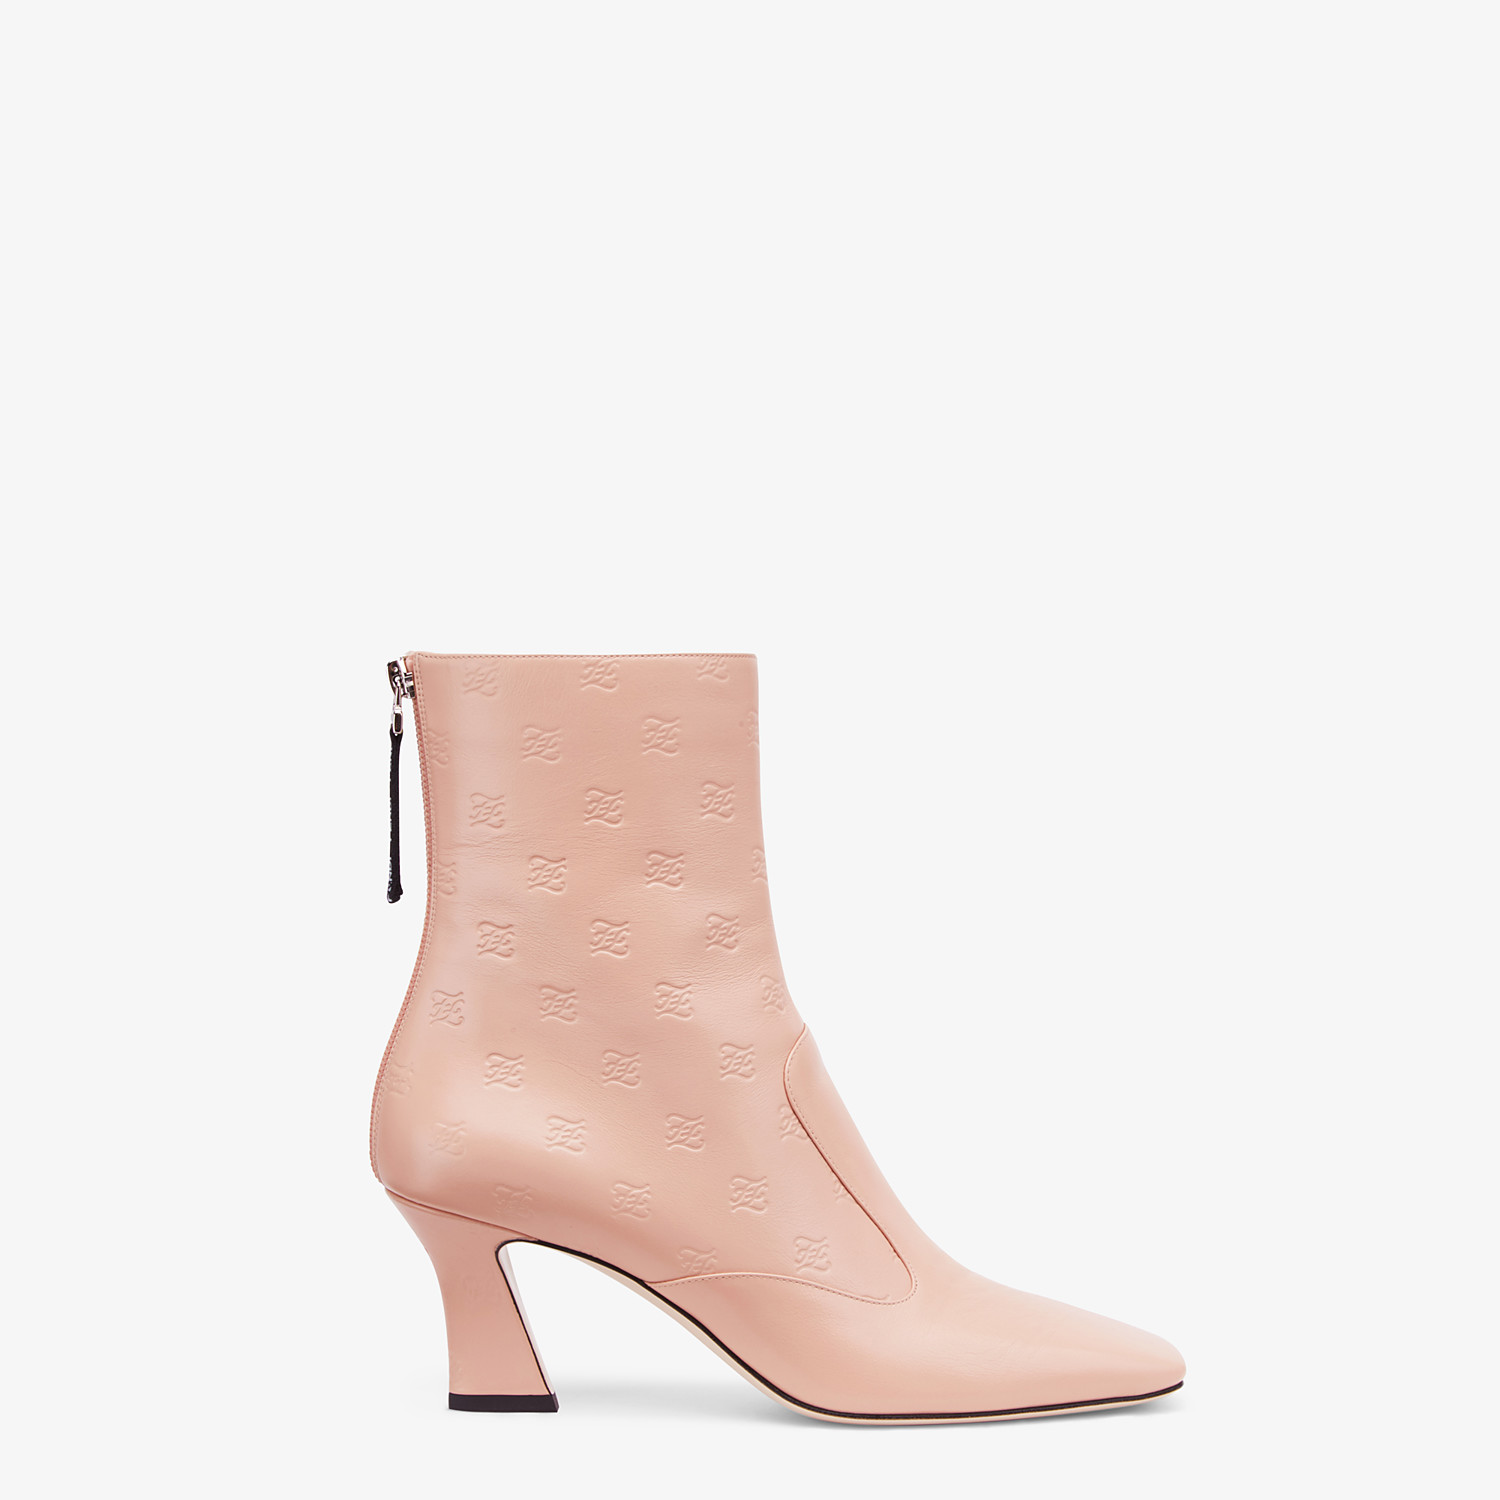 FENDI BOOTS - Booties in pink leather - view 1 detail